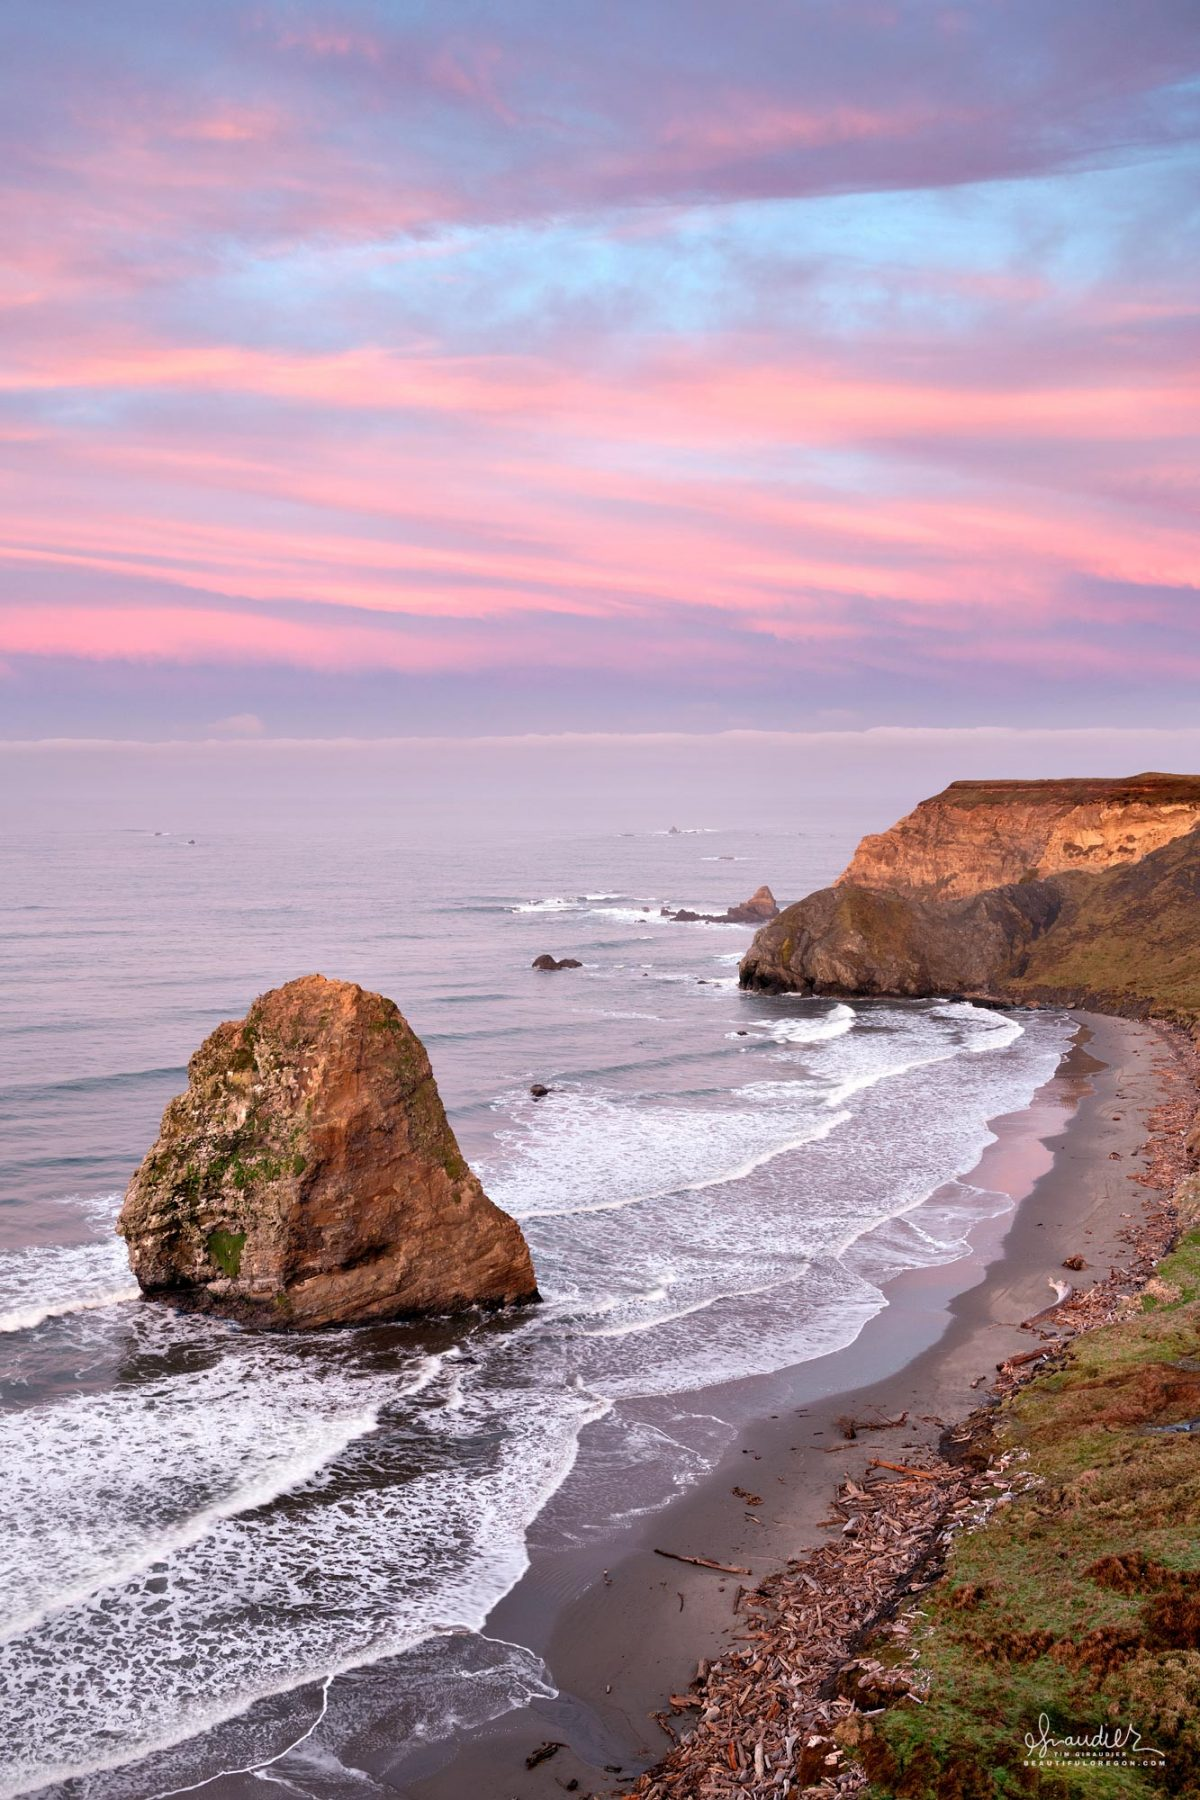 Dawn skies brings pink light to Cape Blanco and Needle Rock. Cape Blanco State Park, Curry County, Oregon South Coast landscape photography.